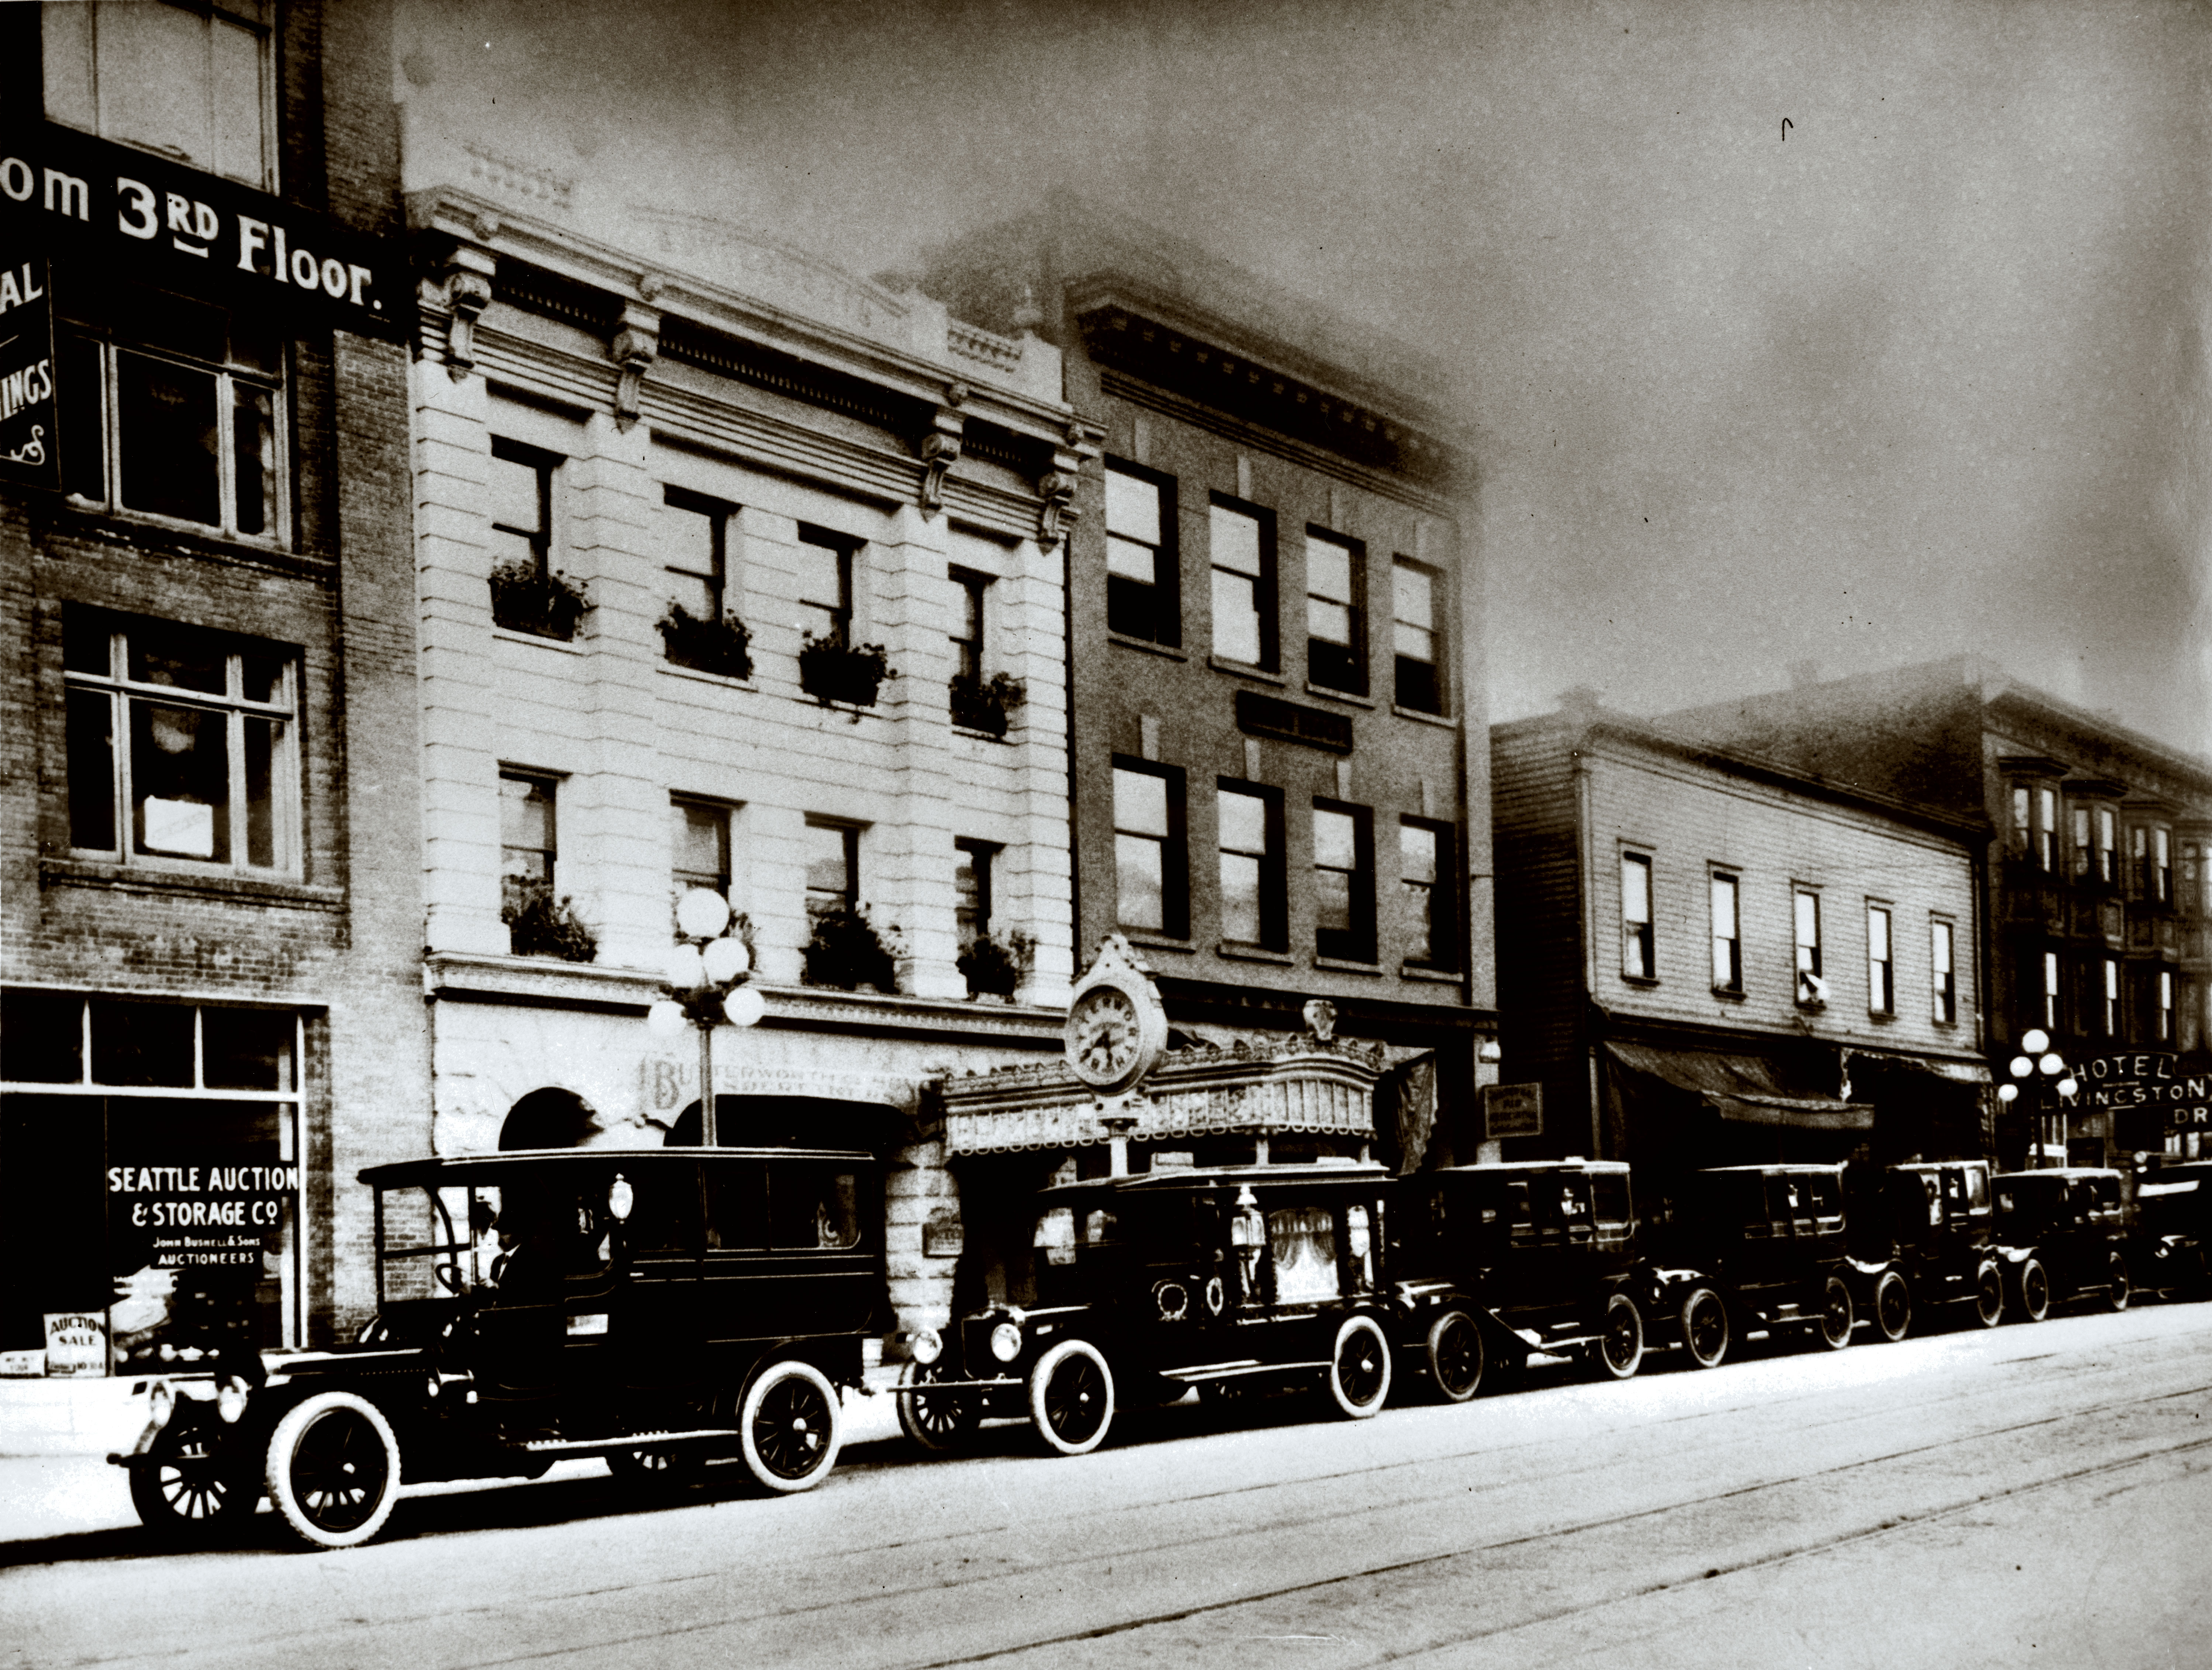 A row of black cars is in front of a row of houses in Seattle. This is an old black and white photograph.